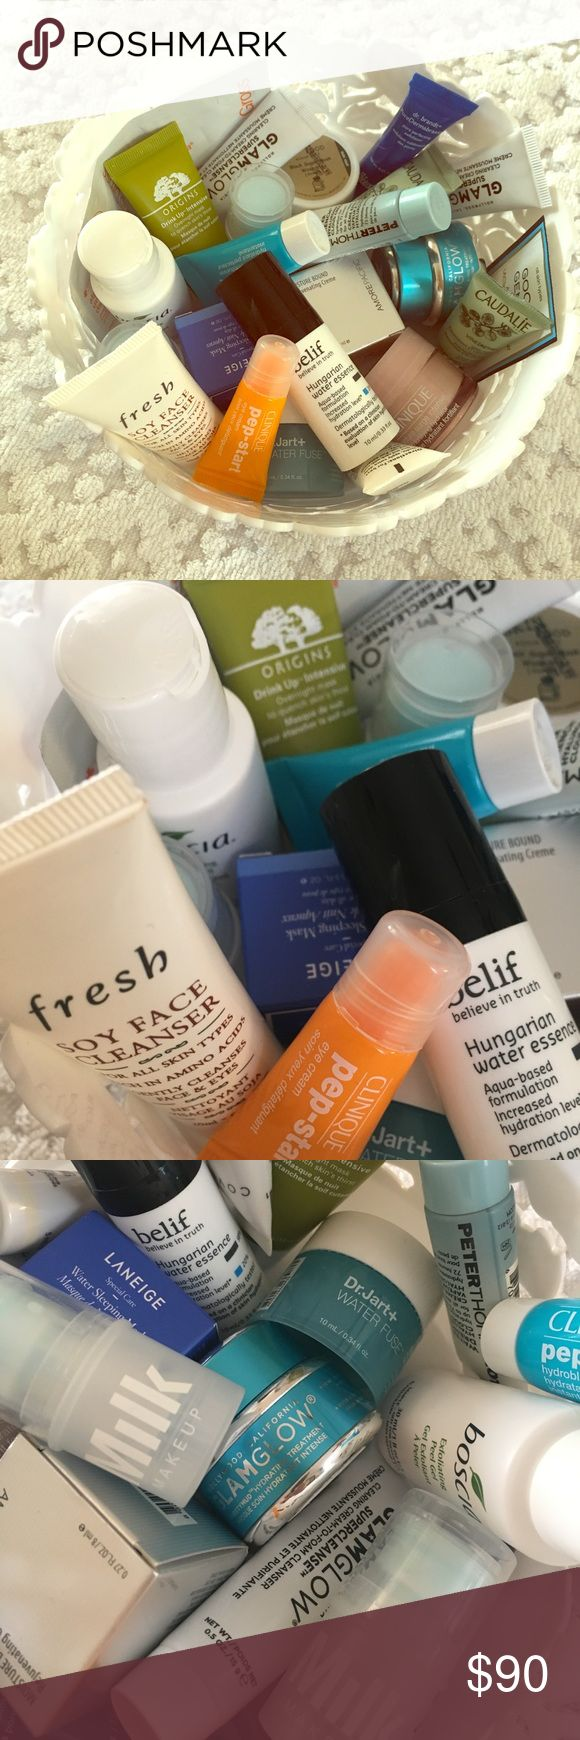 💋 BEAUTY PICK-3 💋 💋ANY 3 for $13 💋   List Updated 3/1/18 @ 9pm EST:  -GlamGlow SuperCleanse -Peter Thomas Roth-Firmx Peel -Peter Thomas Roth-Water Drench Hyaluronic Cloud Cream -Fresh-Soy Face Cleanser -Caudalie-Glow Activating Anti-wrinkle Face Serum -Real Chemistry-Luminous 3-min Peel -Vasanti-BrightenUp! Enzymatic Exfoliating Cleanser -air repair-Super Hydrating Eye Cream -skinfood-Black Sugar Mask Wash Off -Eau Thermale Avene-Hydrance Intense Rehydrating Serum -Origins-Drink-Up…